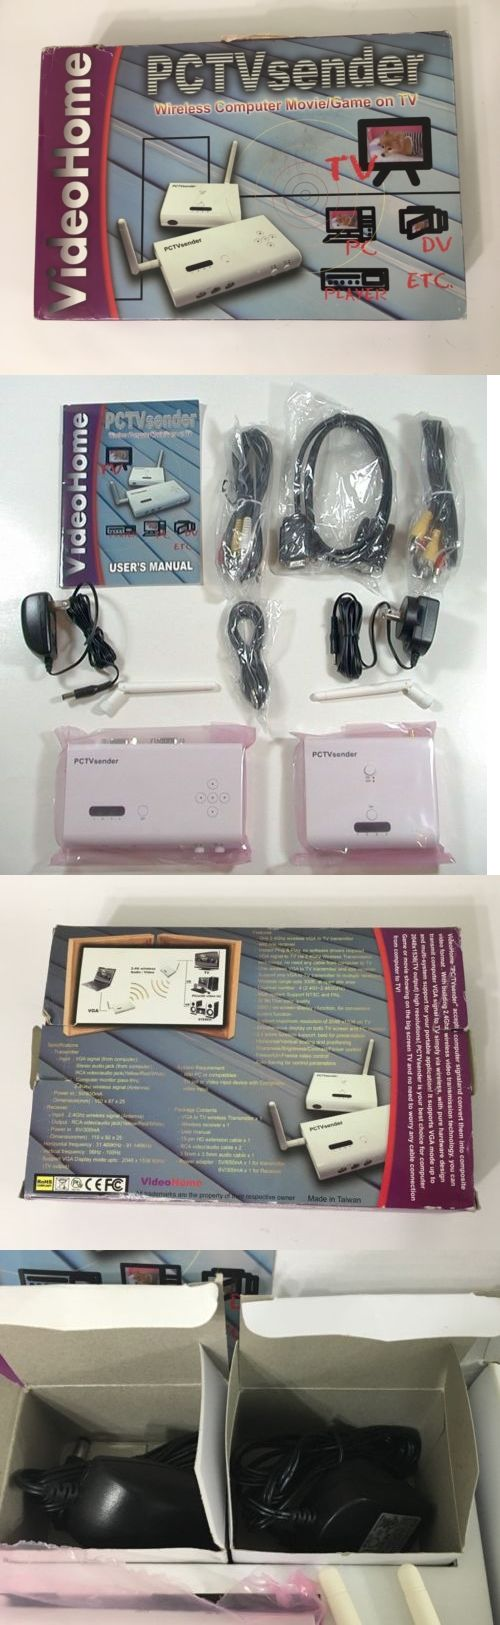 Audio Video Transmitters: Videohome Pc/Tv Sender Receiver Computer Vga To Ntsc Tv Composite Video Wireless BUY IT NOW ONLY: $64.99